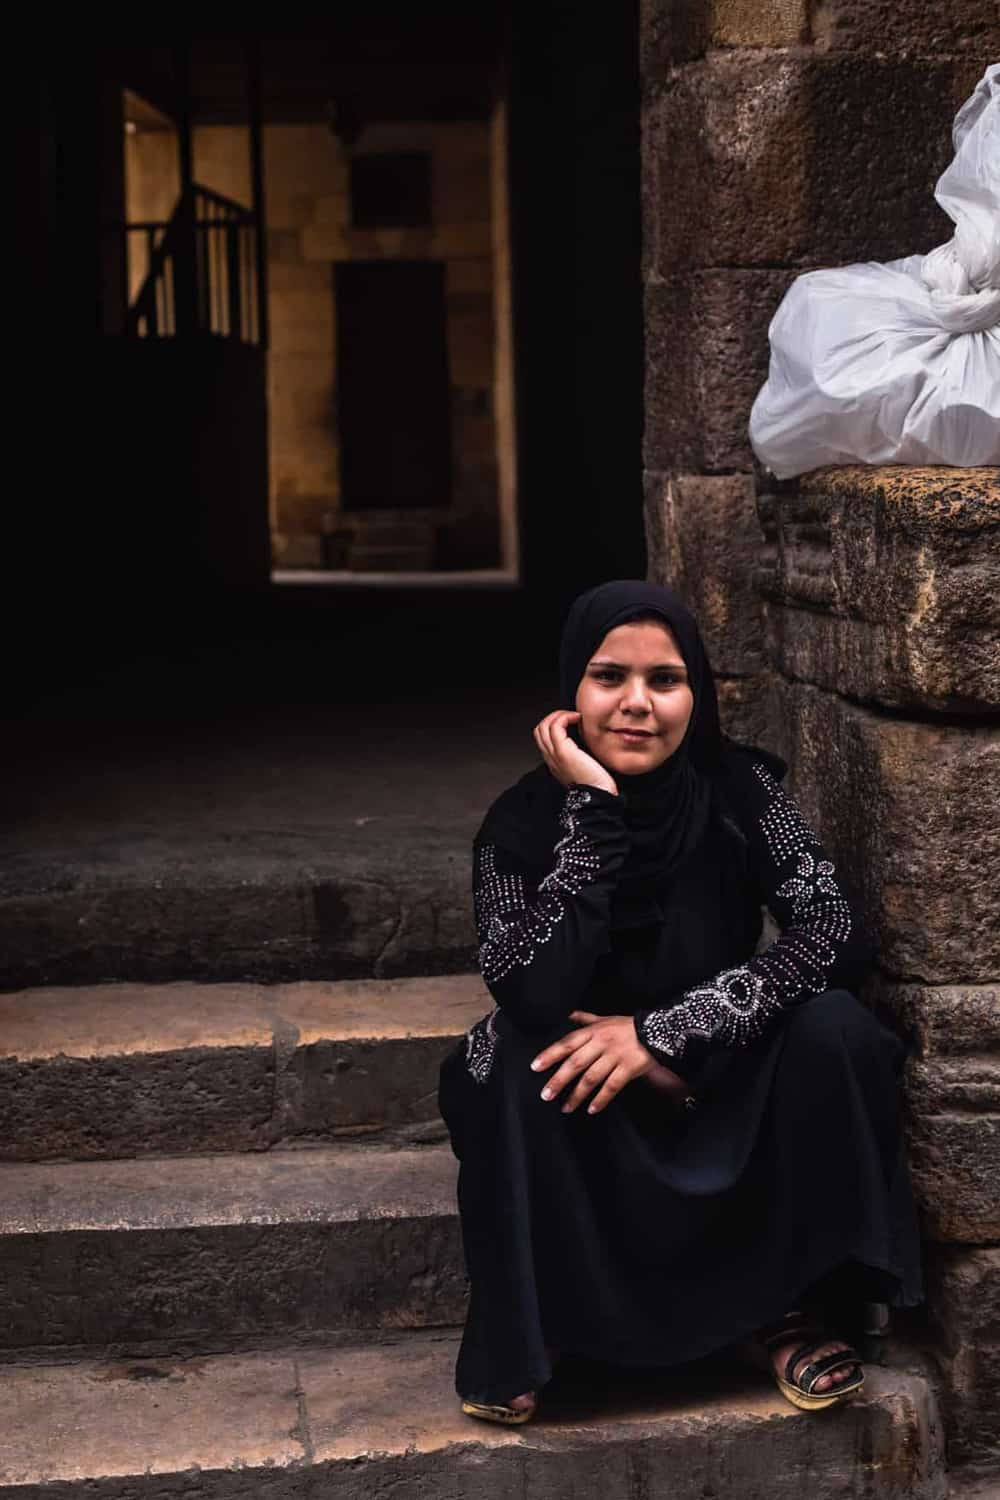 portrait shot of woman in Old Black with a headscarf posing for me with a serious face in Old Cairo.